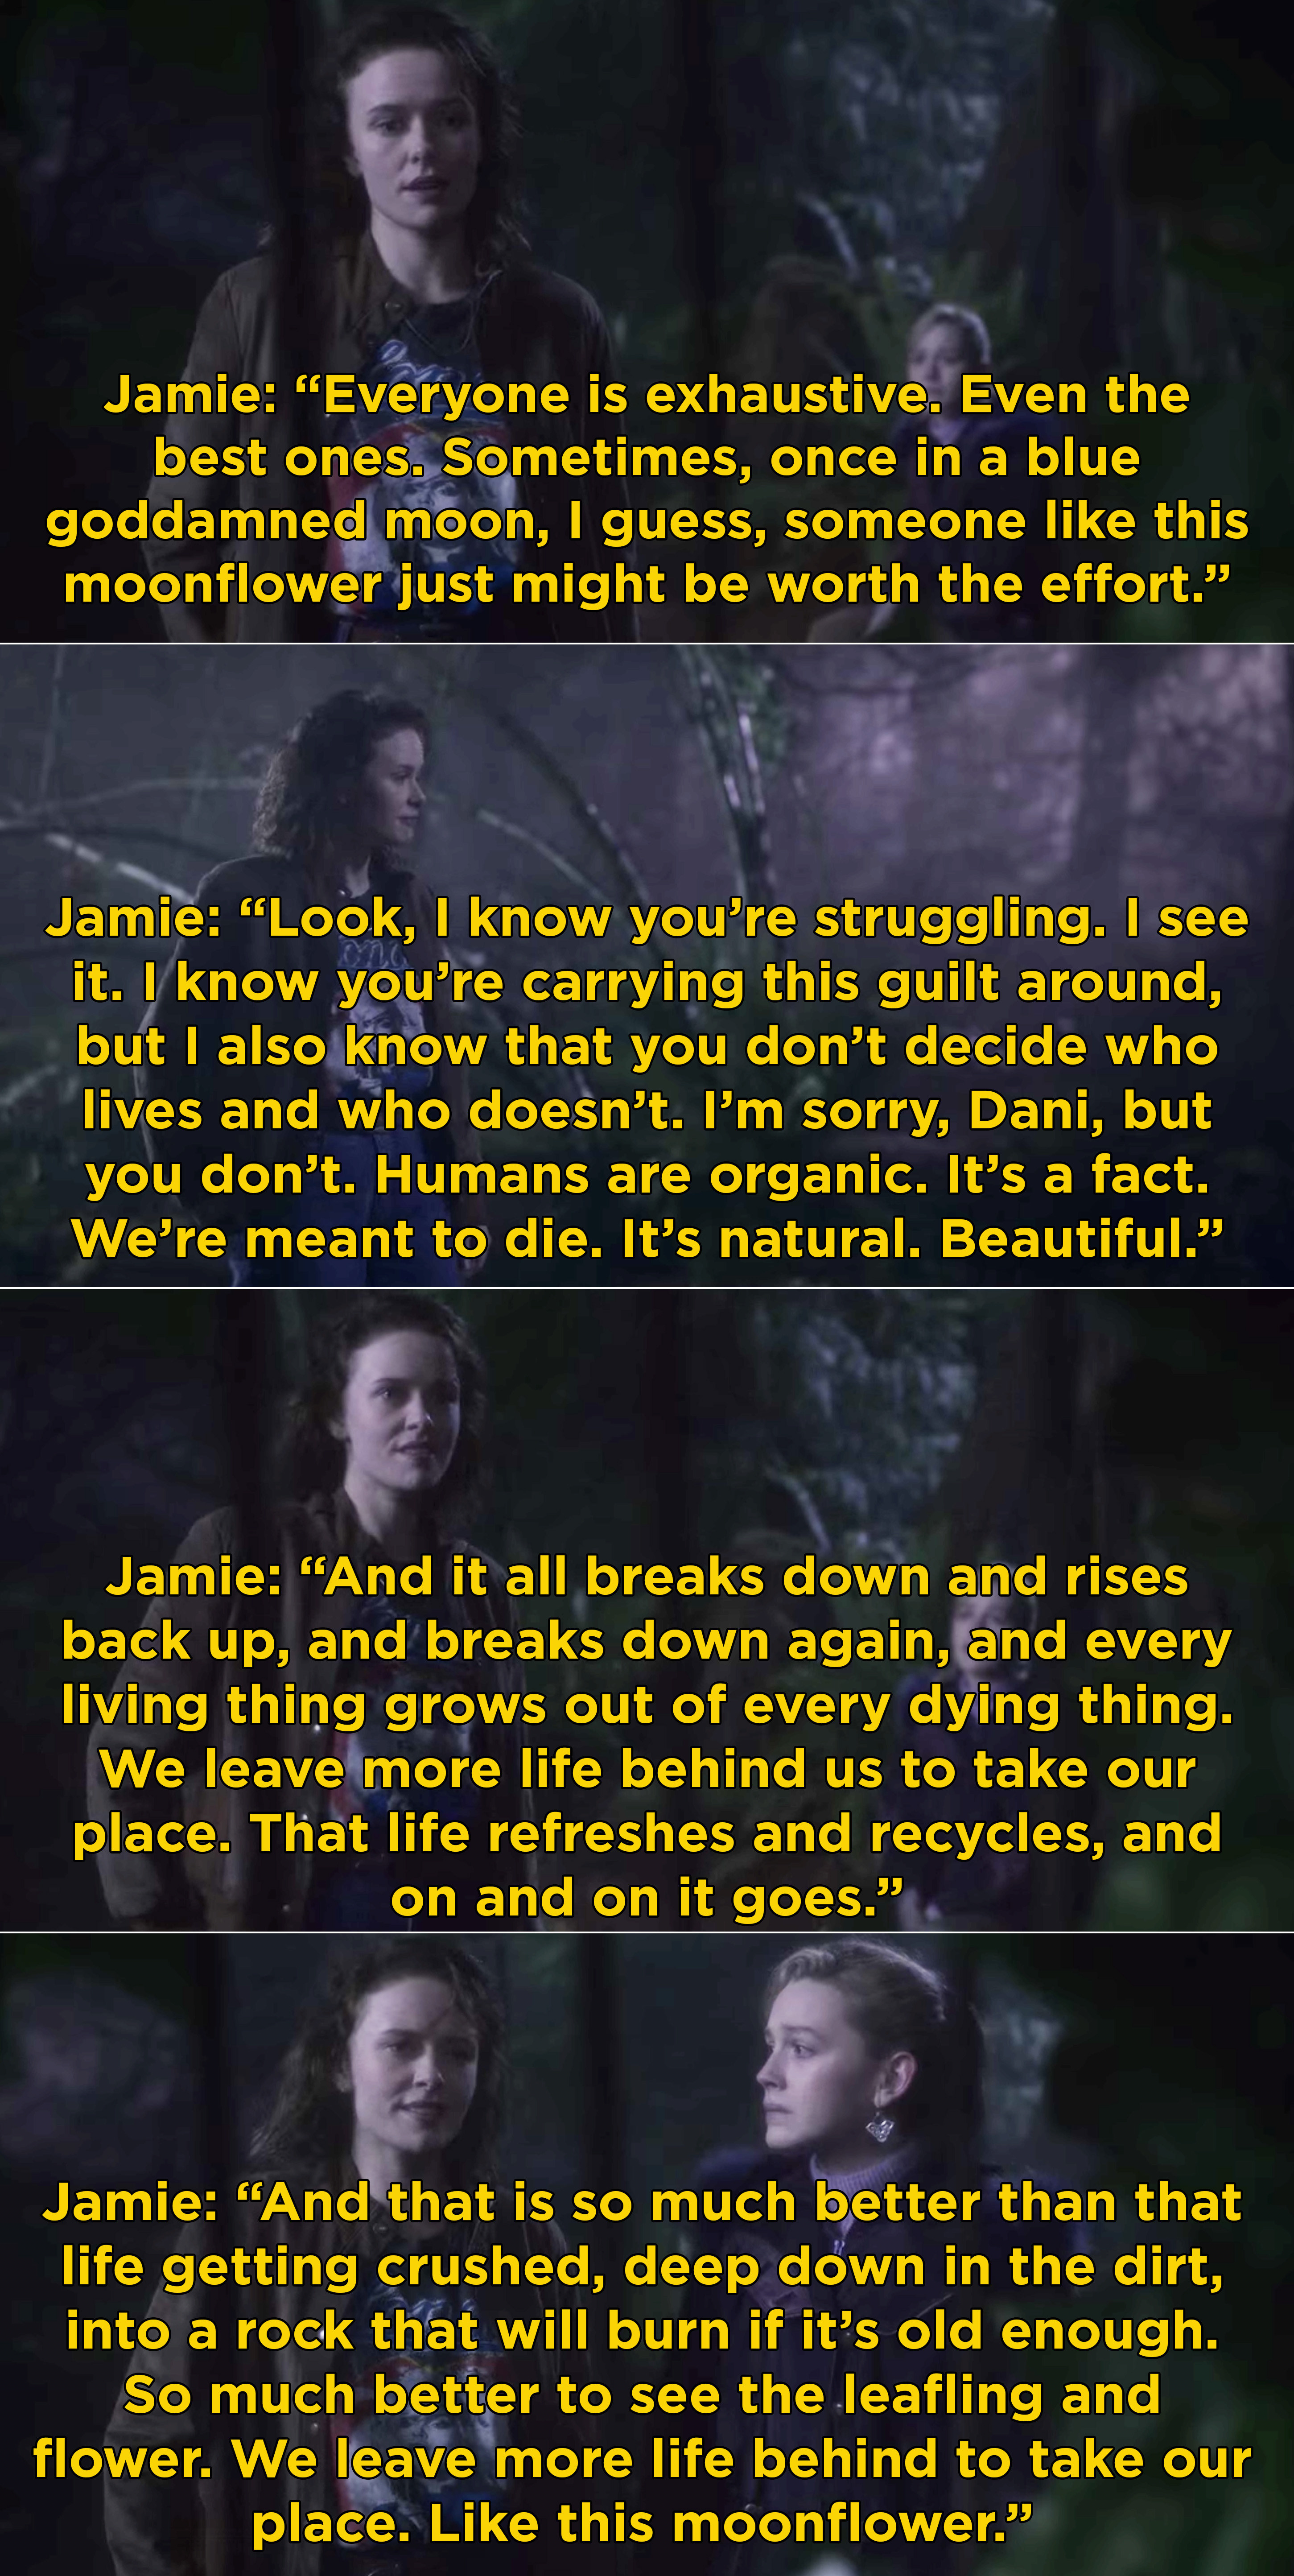 Jamie explaining to Dani how everyone dies, but then we become part of the earth and help new life grow